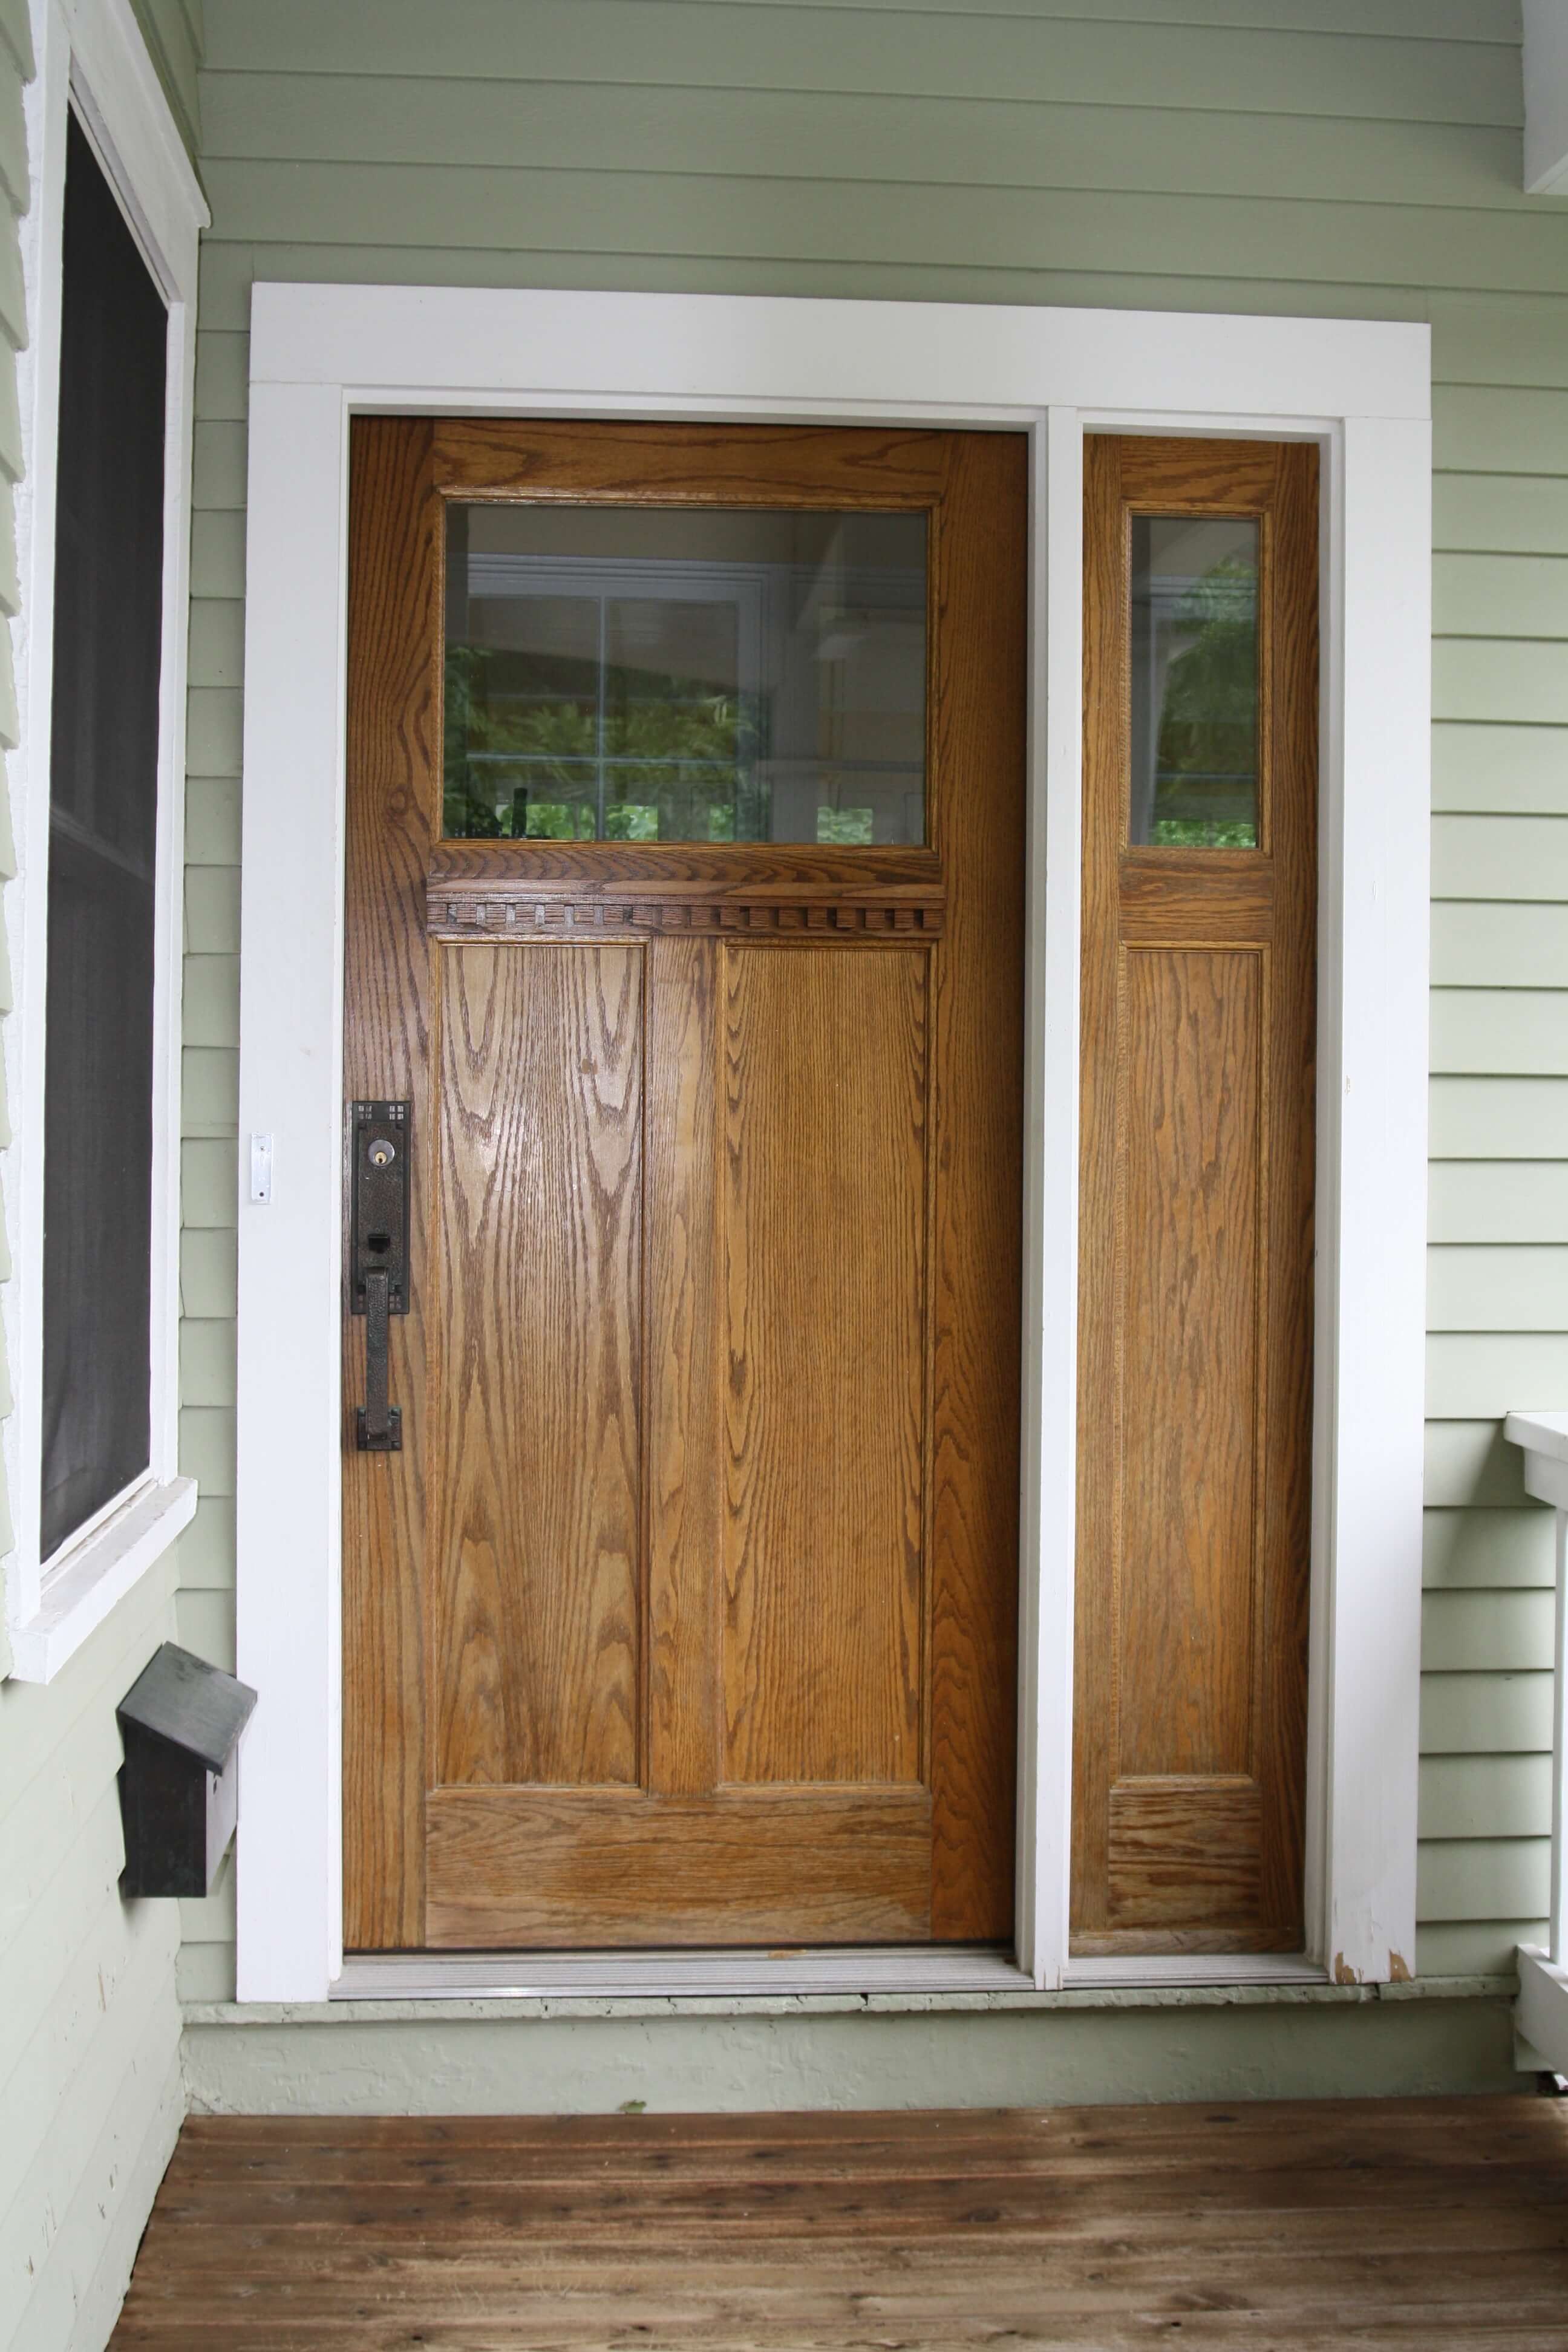 Wood entry doors in the front of a house